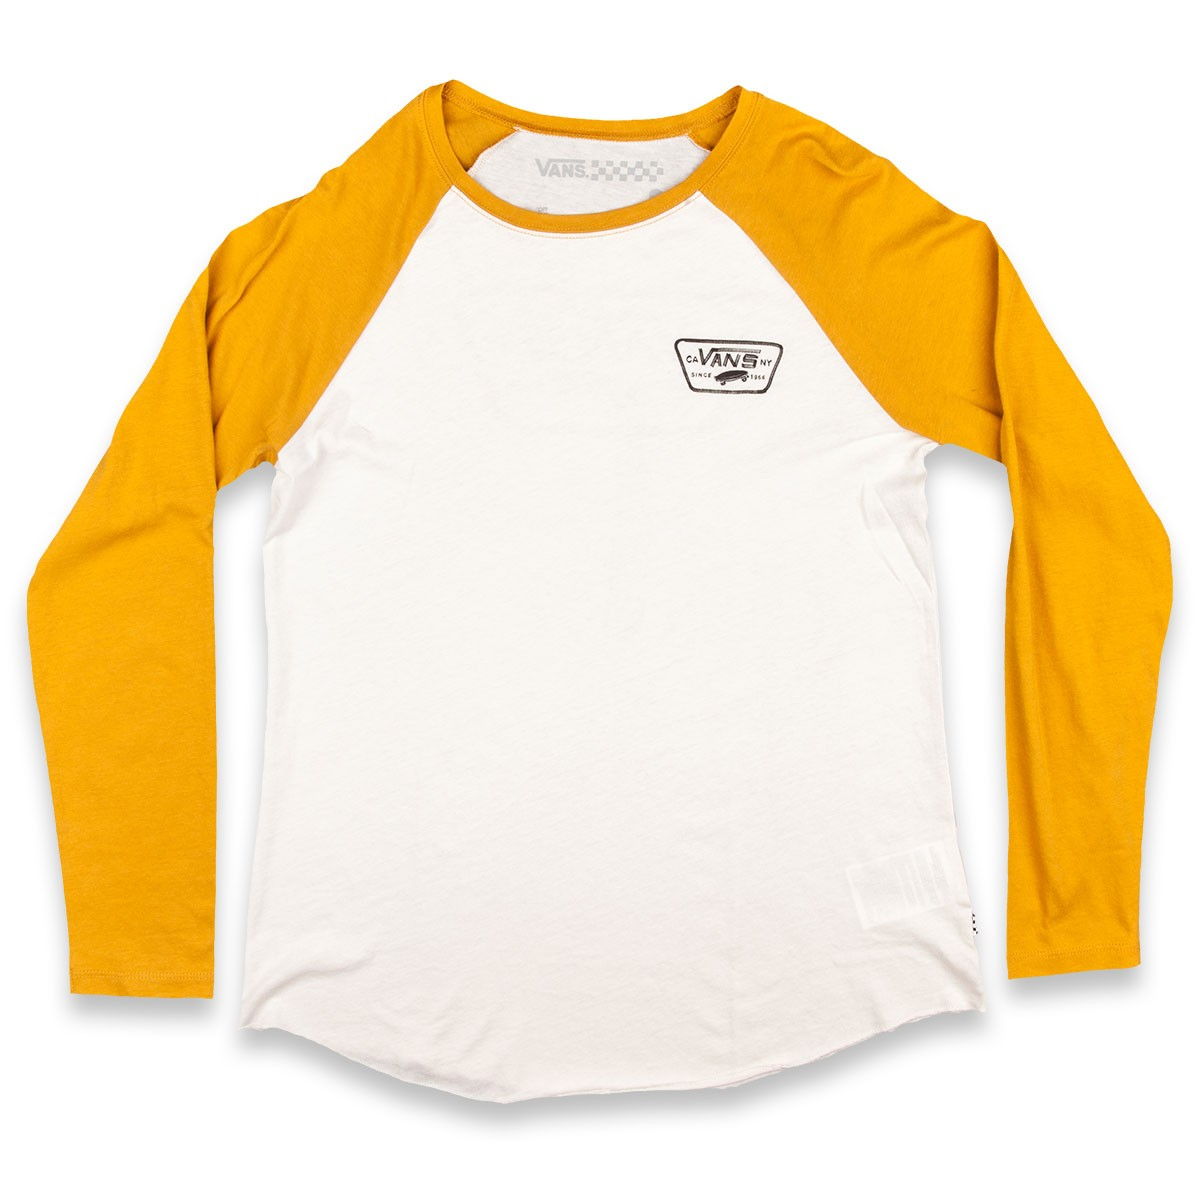 a6a842e28f vans-authentic-rags-womens-t-shirt-white-sand-spruce-yellow-1.1506919955.jpg